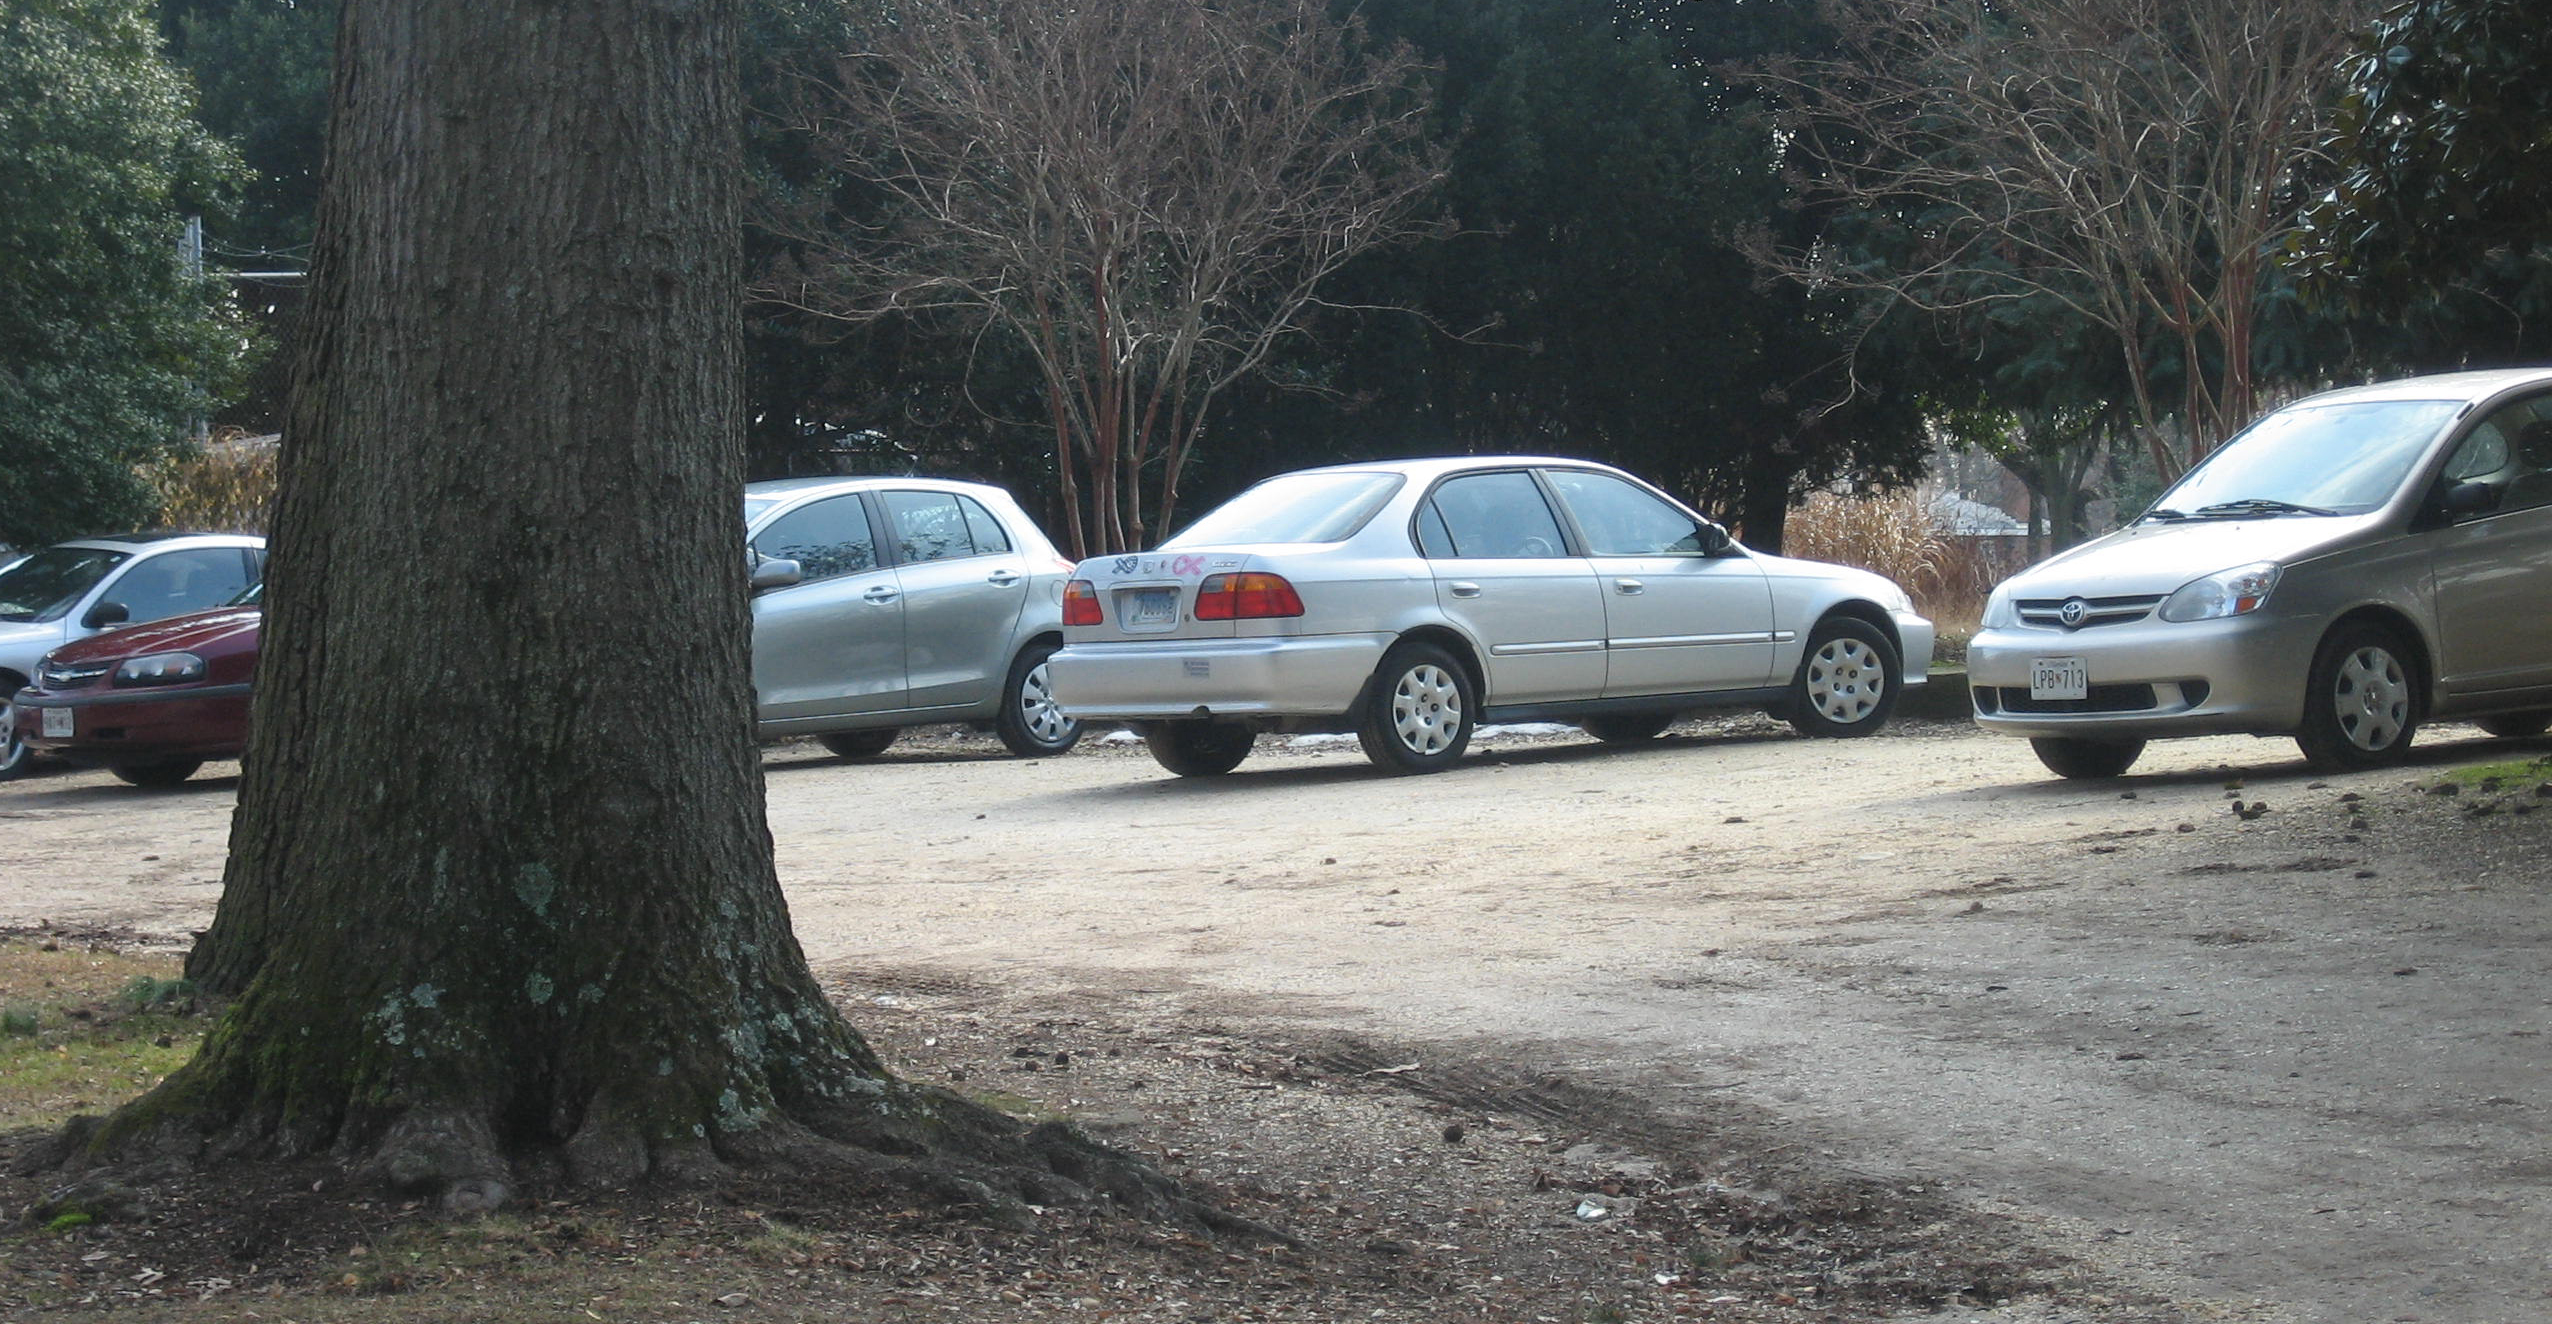 The employee lot is available some times for mobility impaired visitors.